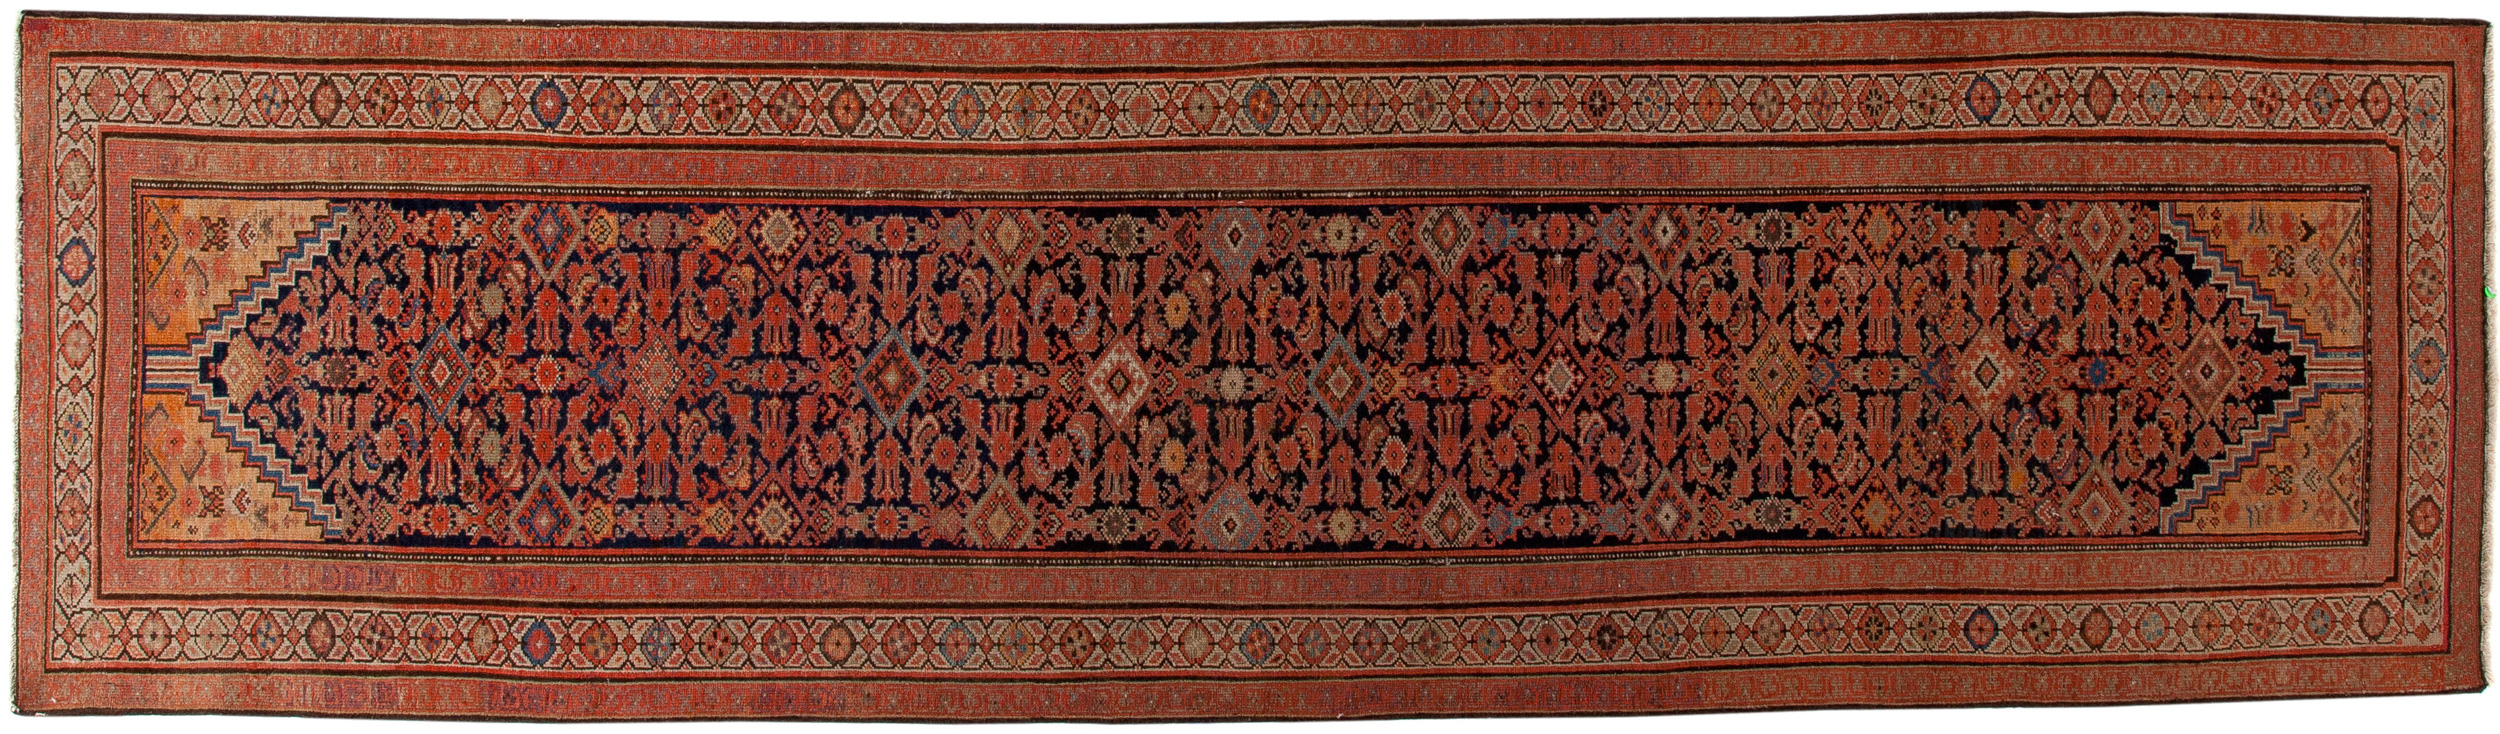 Antique Persian Style Runner